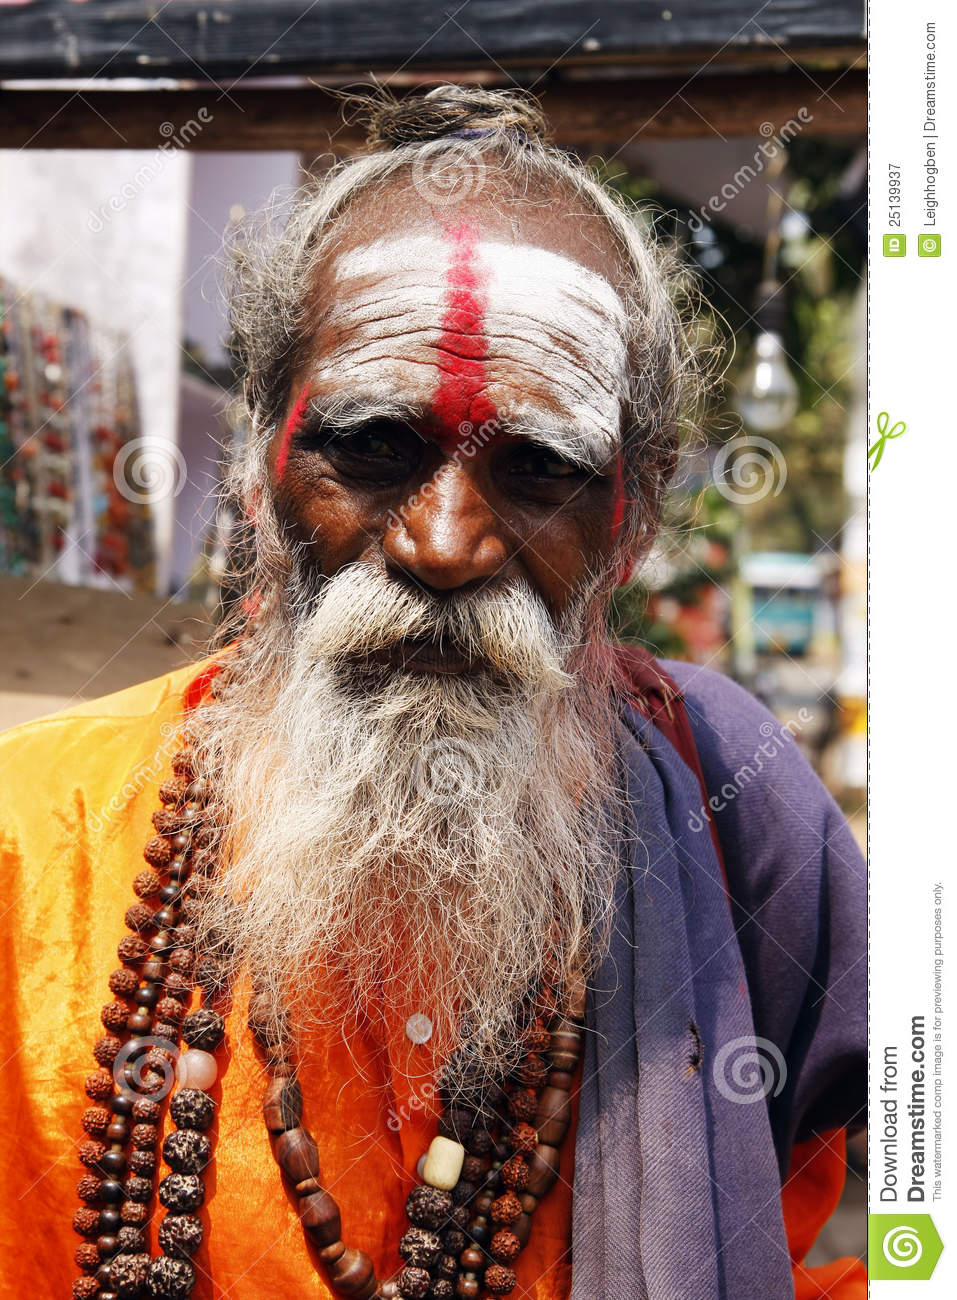 Arresting Sadhus Portrait Photography Religious Photography: Indian Sadhu Editorial Photography